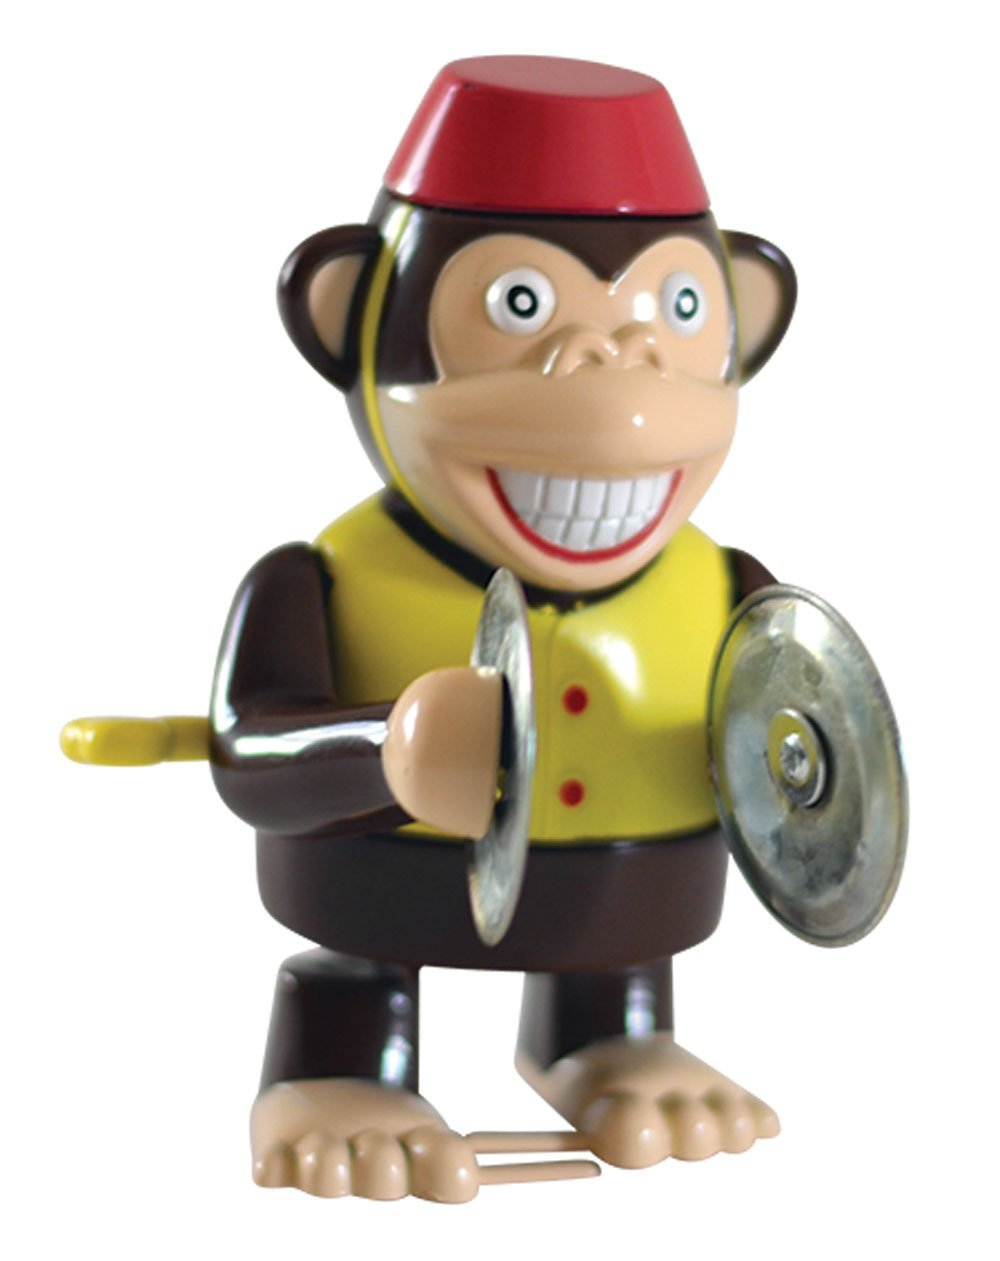 Wind Up Cymbal Monkey Toy - Windup Monkey Marching and Playing Cymbals - Toys for Toddlers Kids Children Boys Girls - Classic Wind-up Surprising Happy Clapping Monkey 4'' Tall Walks Plays Cymbals